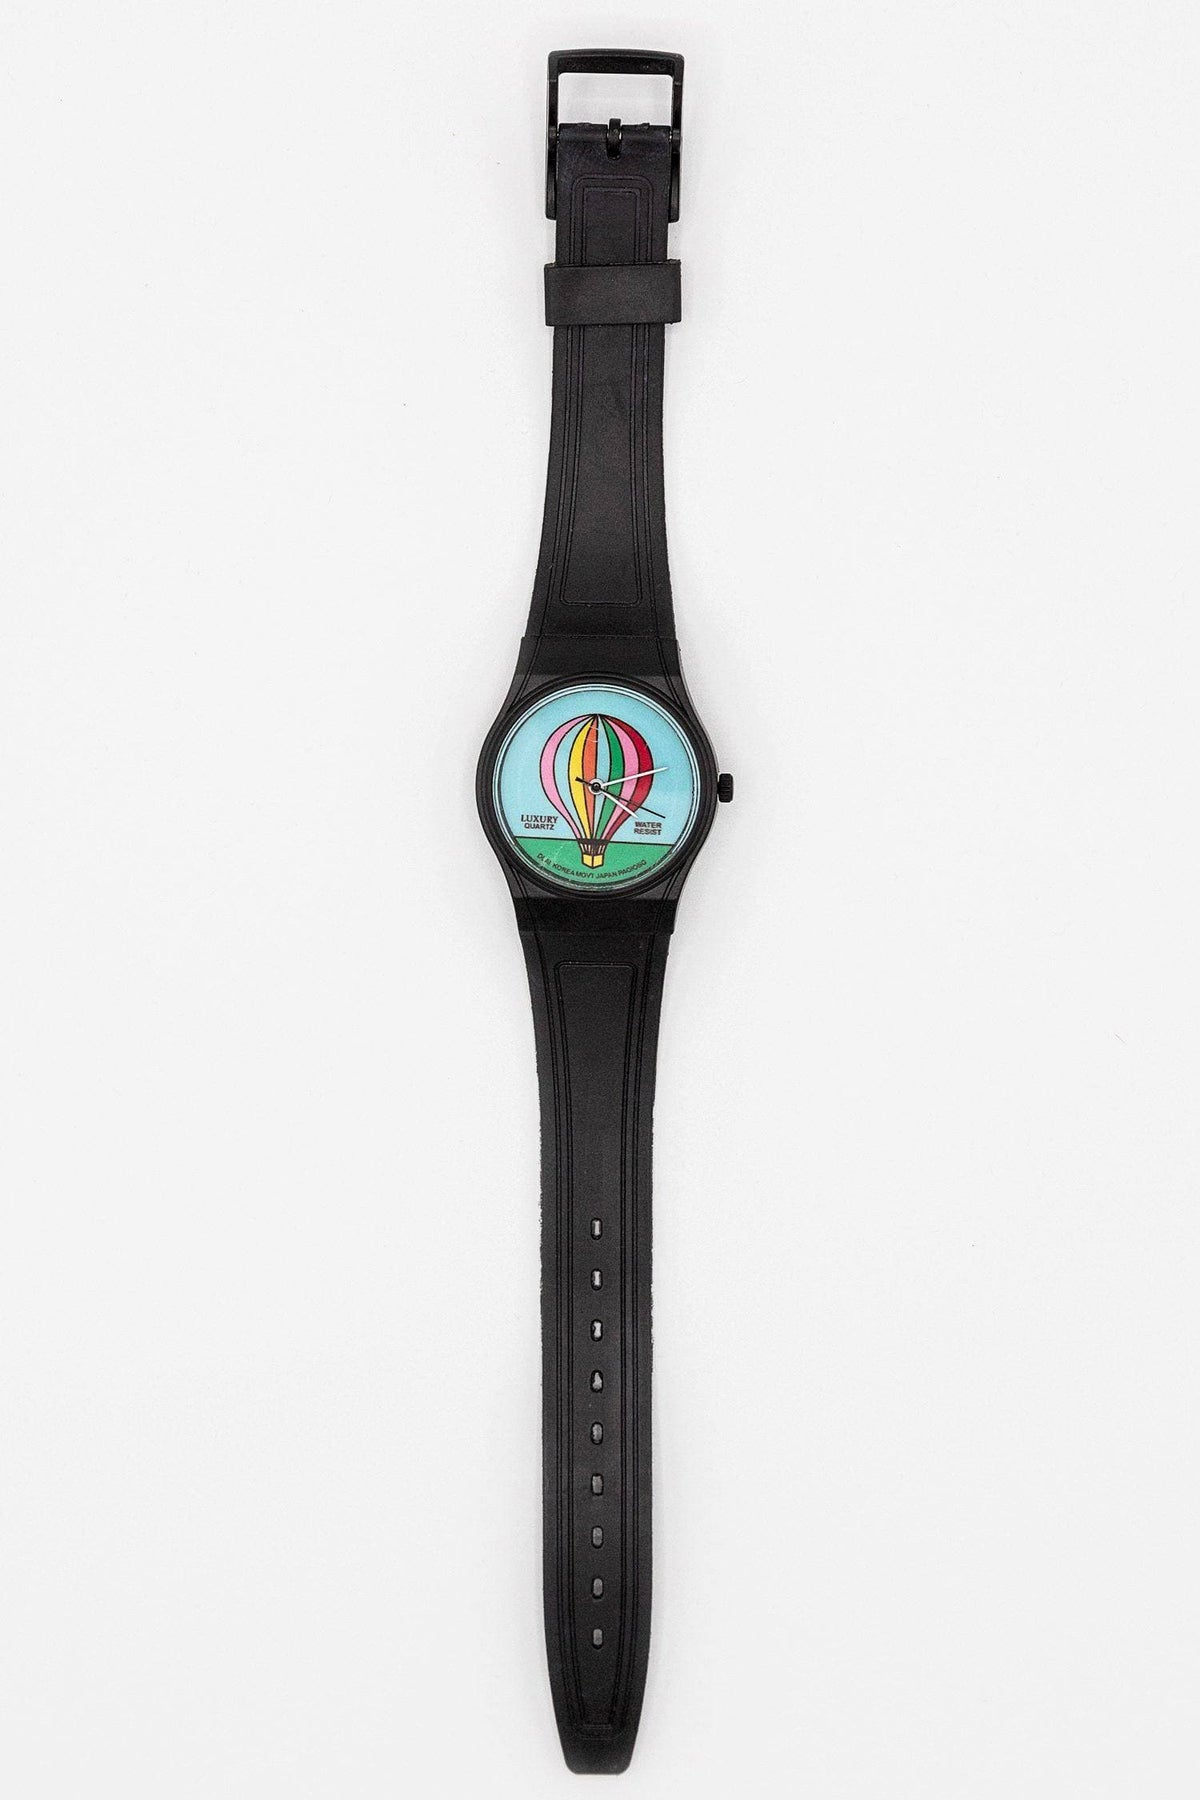 WCHRBALL - Balloon Ride Unisex Watch